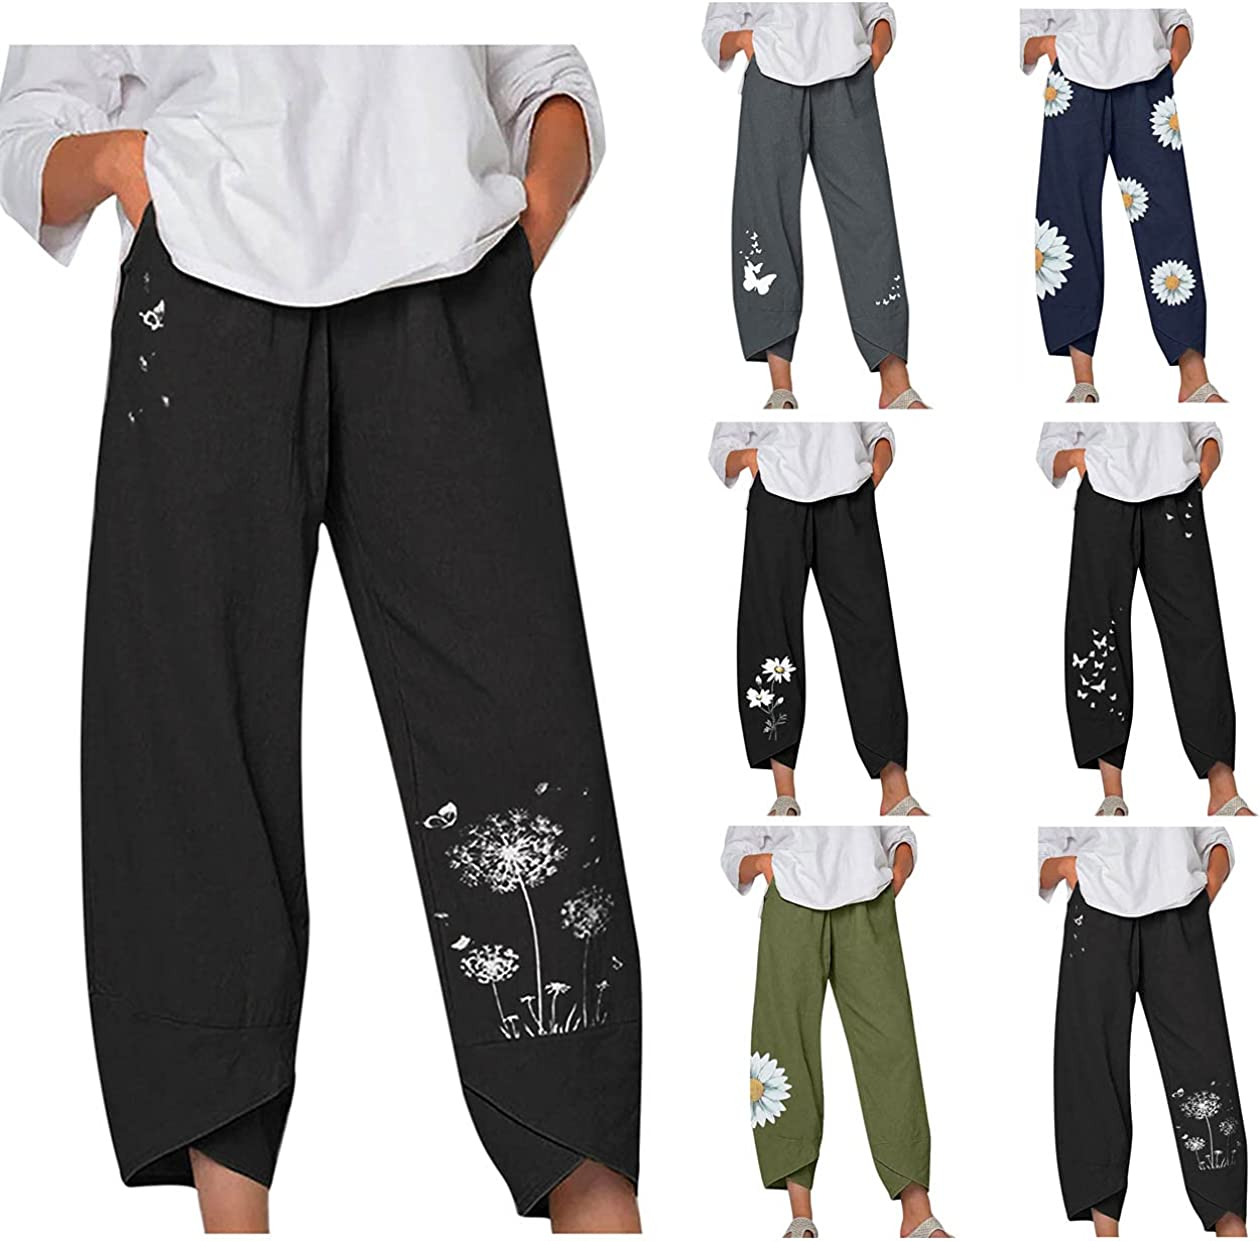 Smooto Women's Linen Pants Elastic Waist Casual Cropped Pants with Pockets